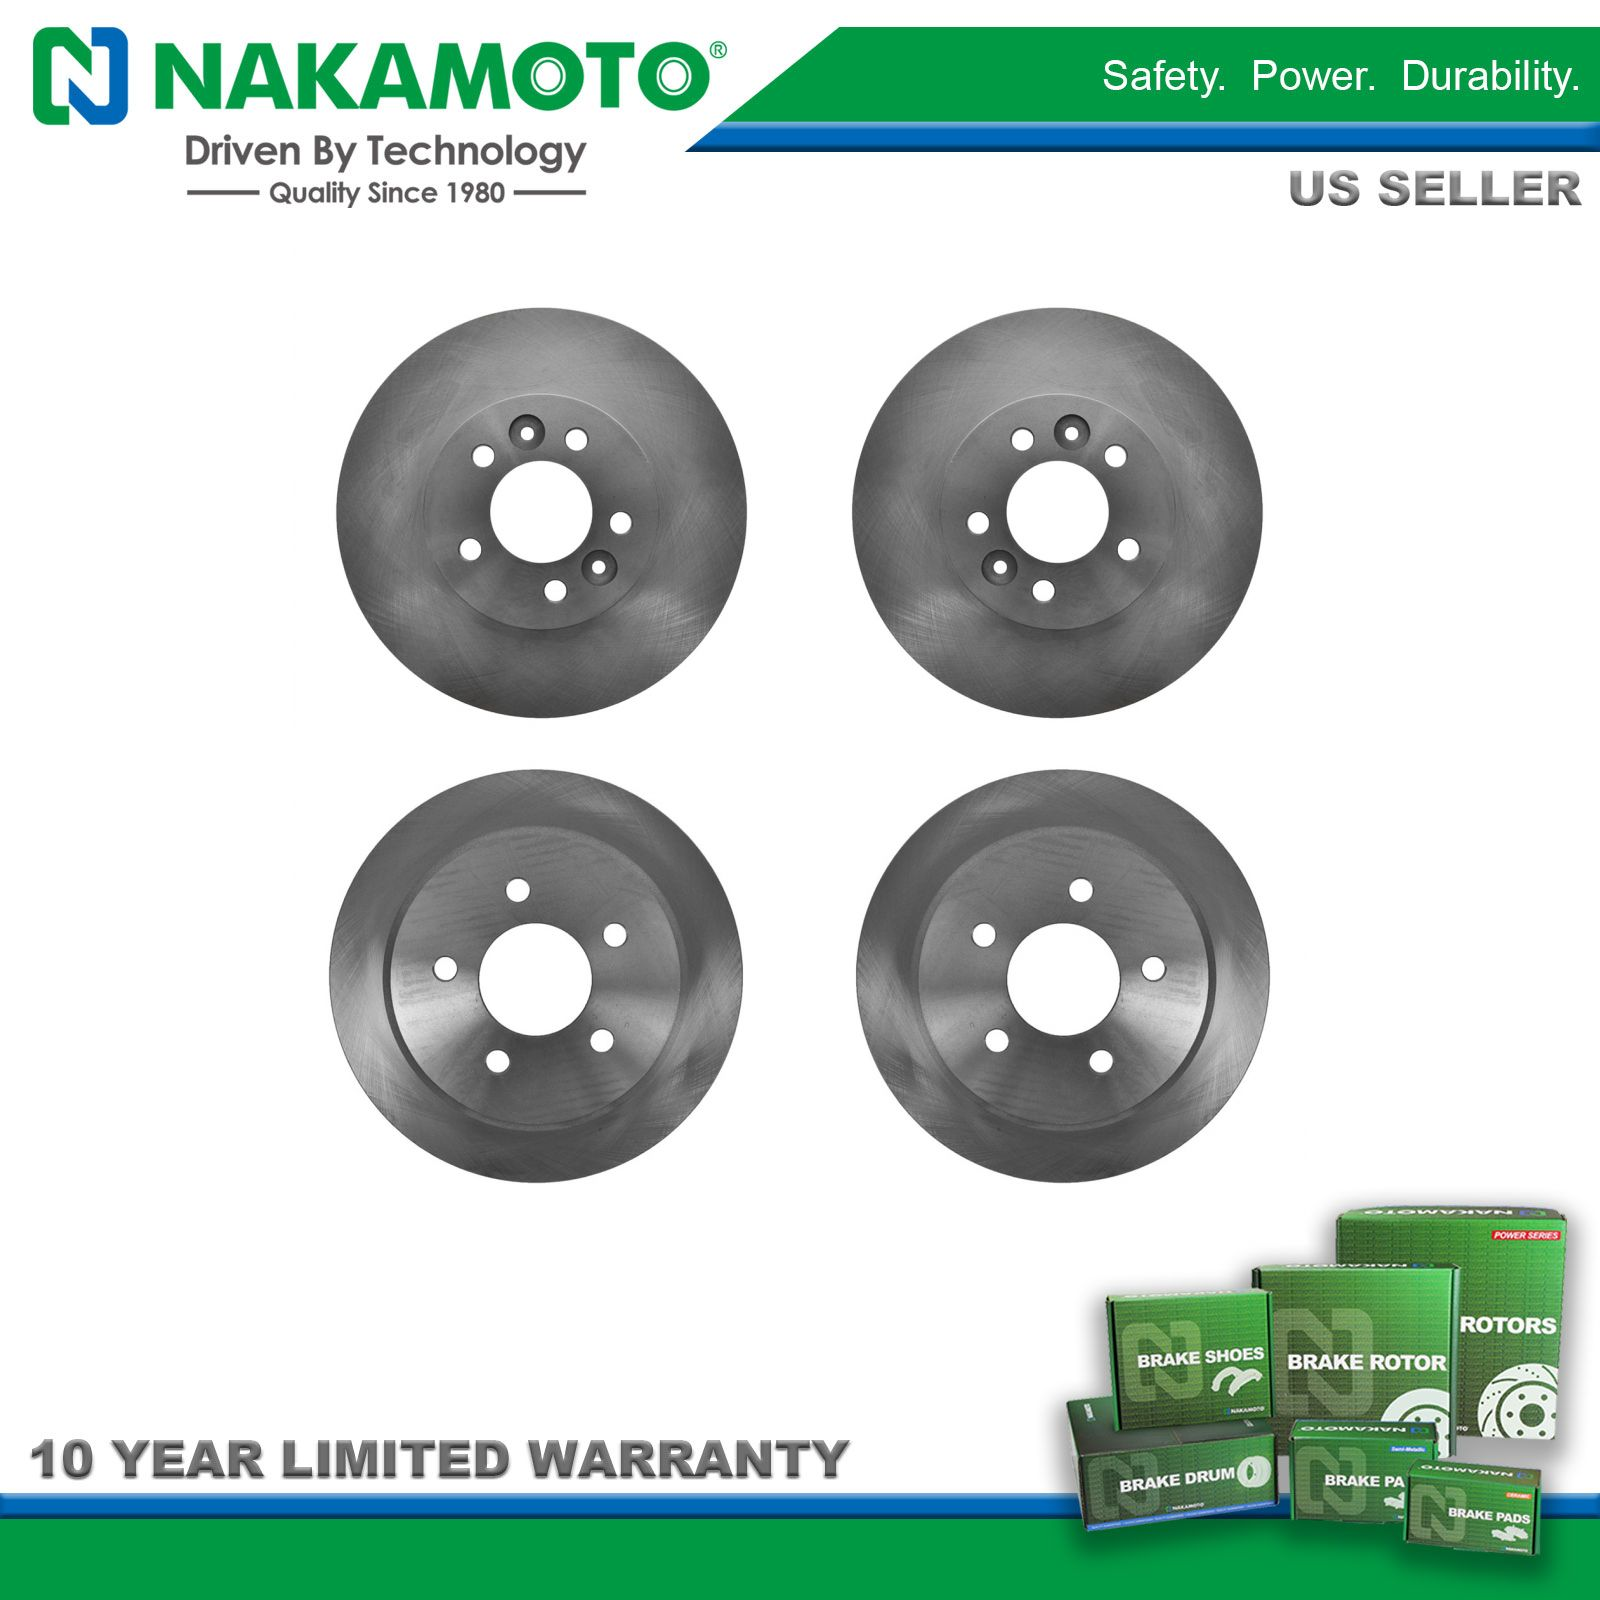 Details about Nakamoto Brake Rotor Front & Rear Kit for Crown Victoria  Grand Marquis Town Car